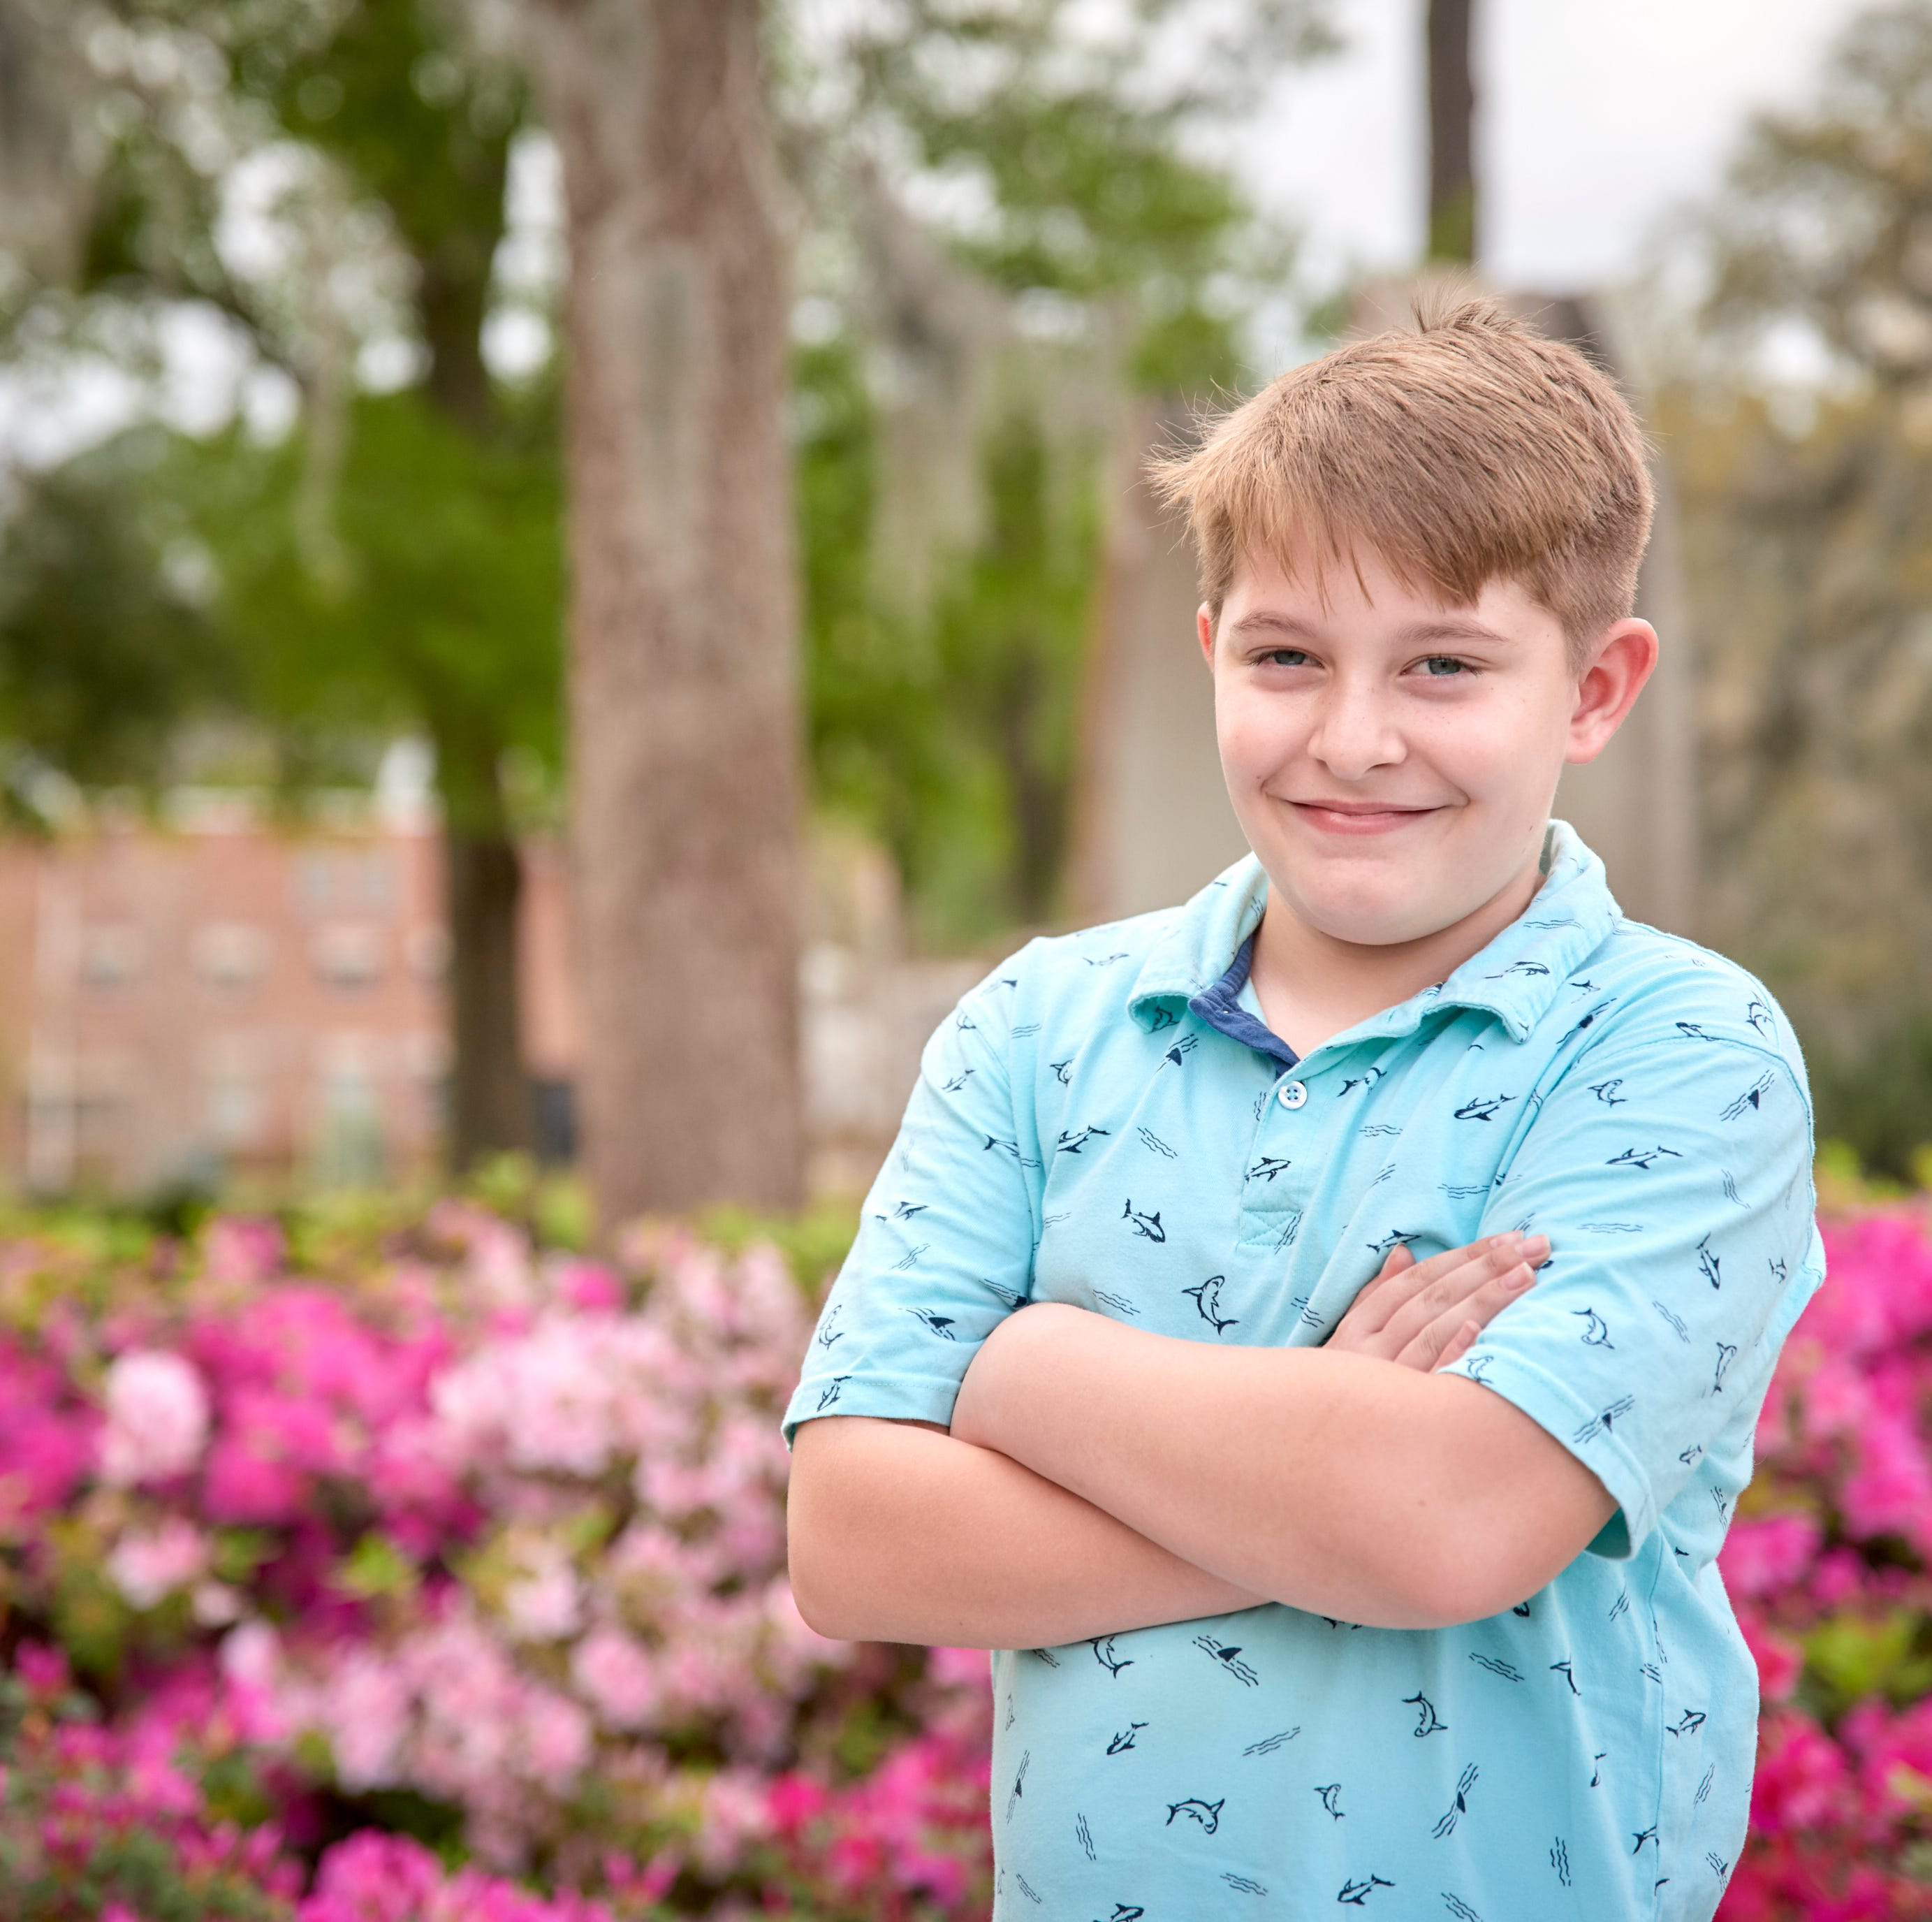 Routine hearing exam leads to frightening diagnosis, brain surgery for fourth grader